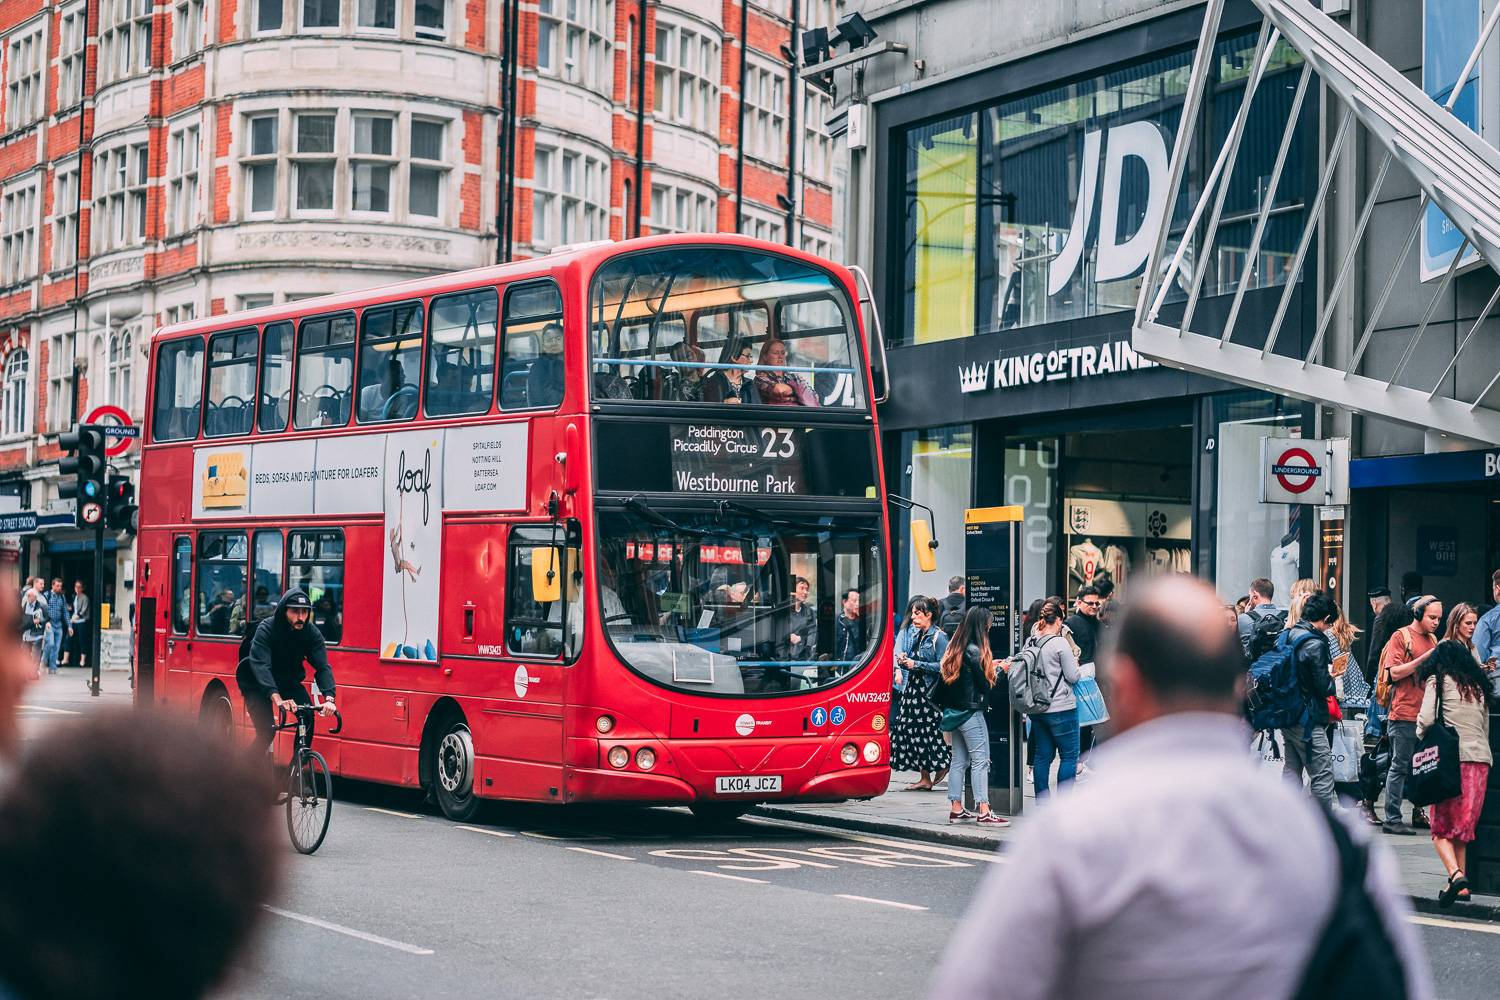 Image of a London double decker bus in the heart of the city.